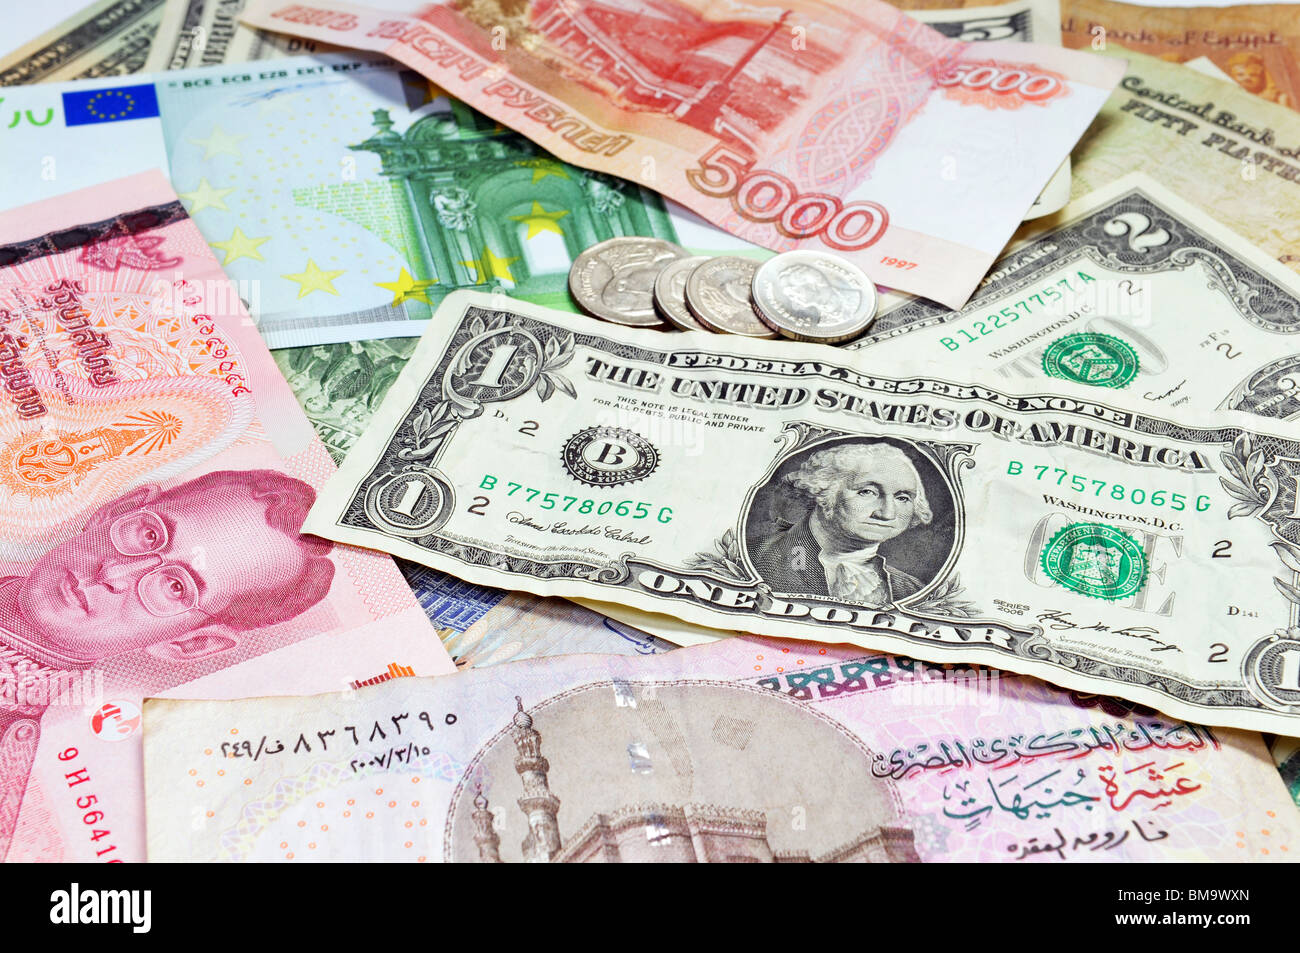 A collection of various currencies - Stock Image